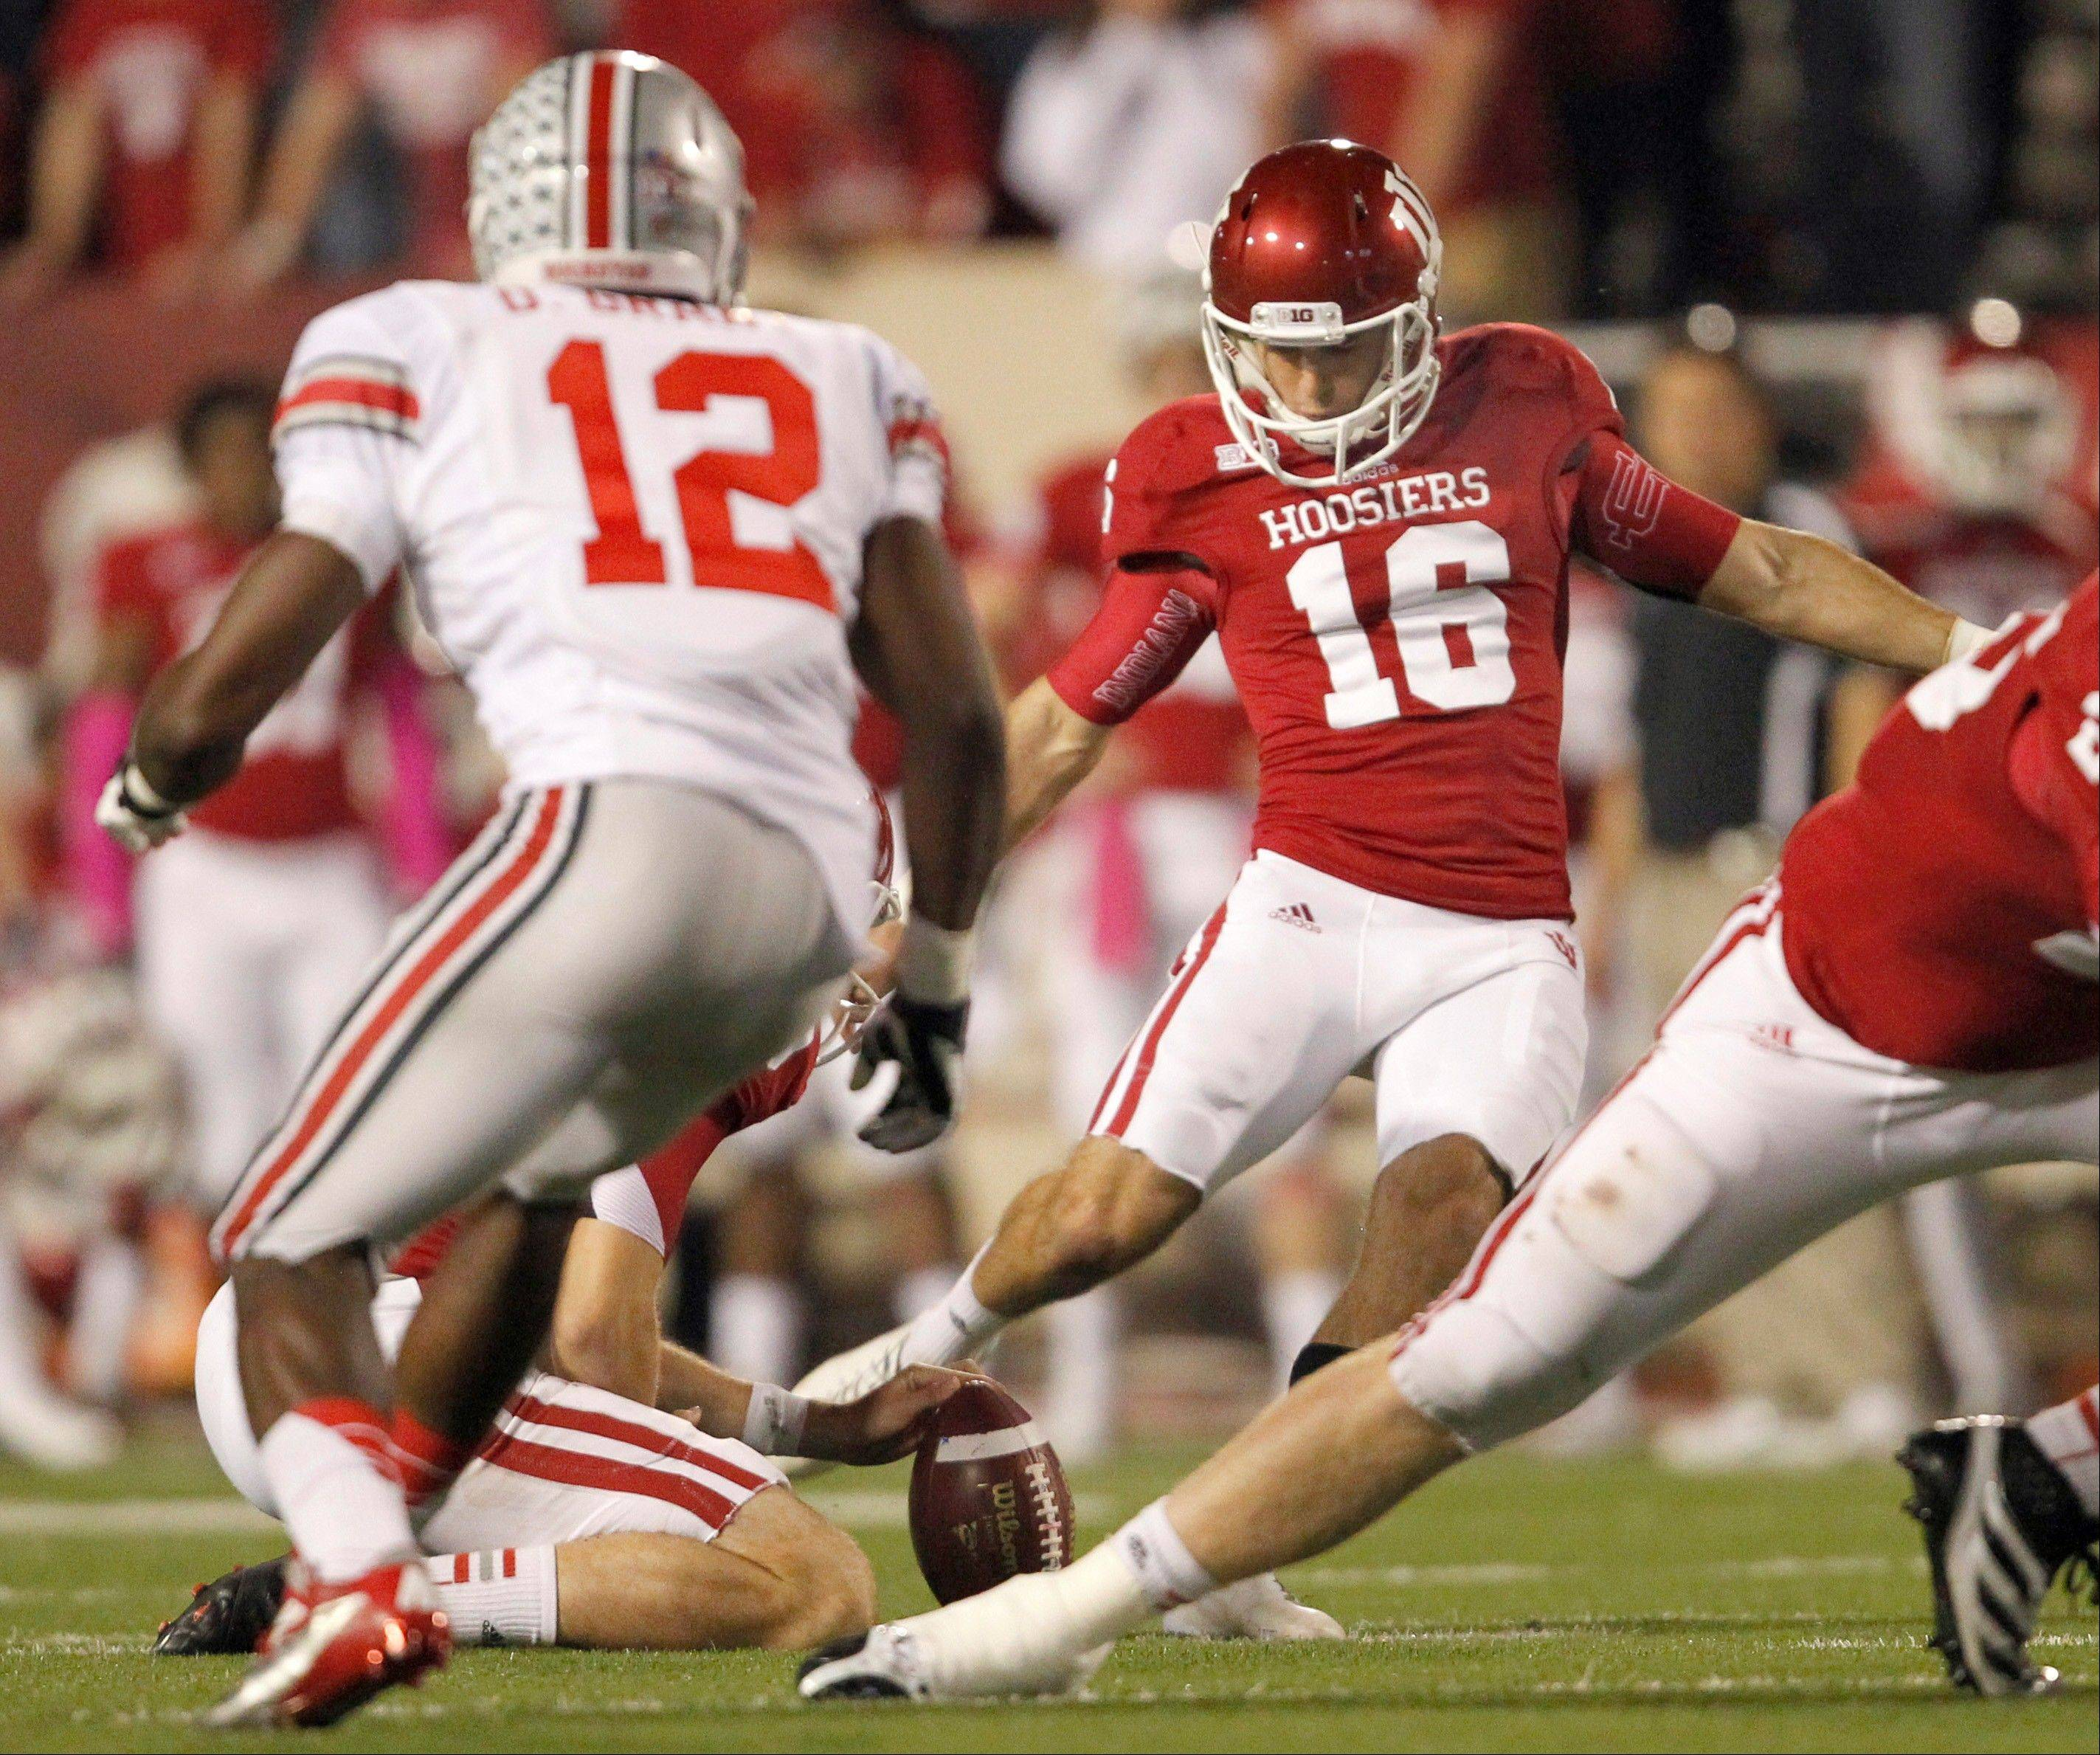 Indiana kicker Mitch Ewald (16) should break at least two IU records this season. The Waubonsie Valley kicker is among 127 players from area suburbs on FBS rosters to open the college football season.